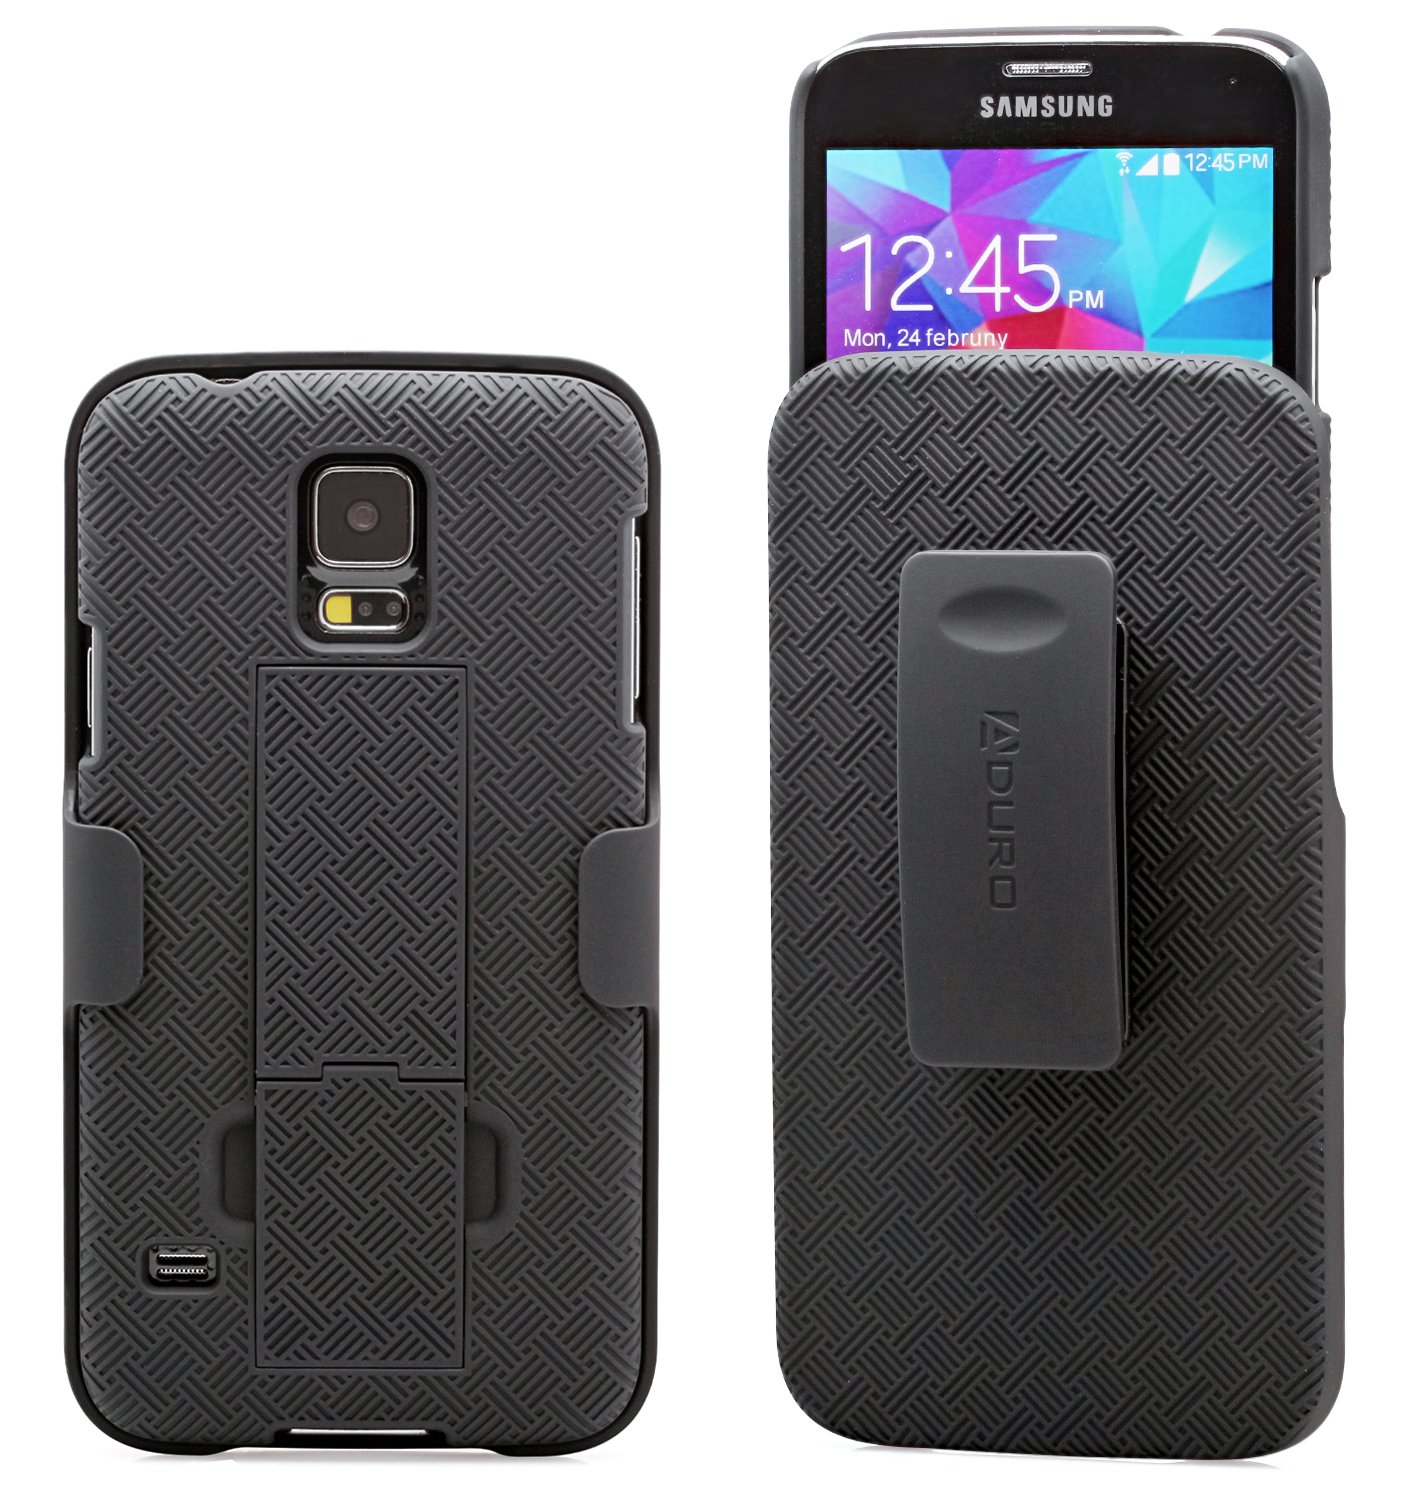 Aduro Galaxy S5 Case, Combo Shell & Holster Case Super Slim Shell Case w/Built-in Kickstand + Swivel Belt Clip Holster for Samsung Galaxy S5